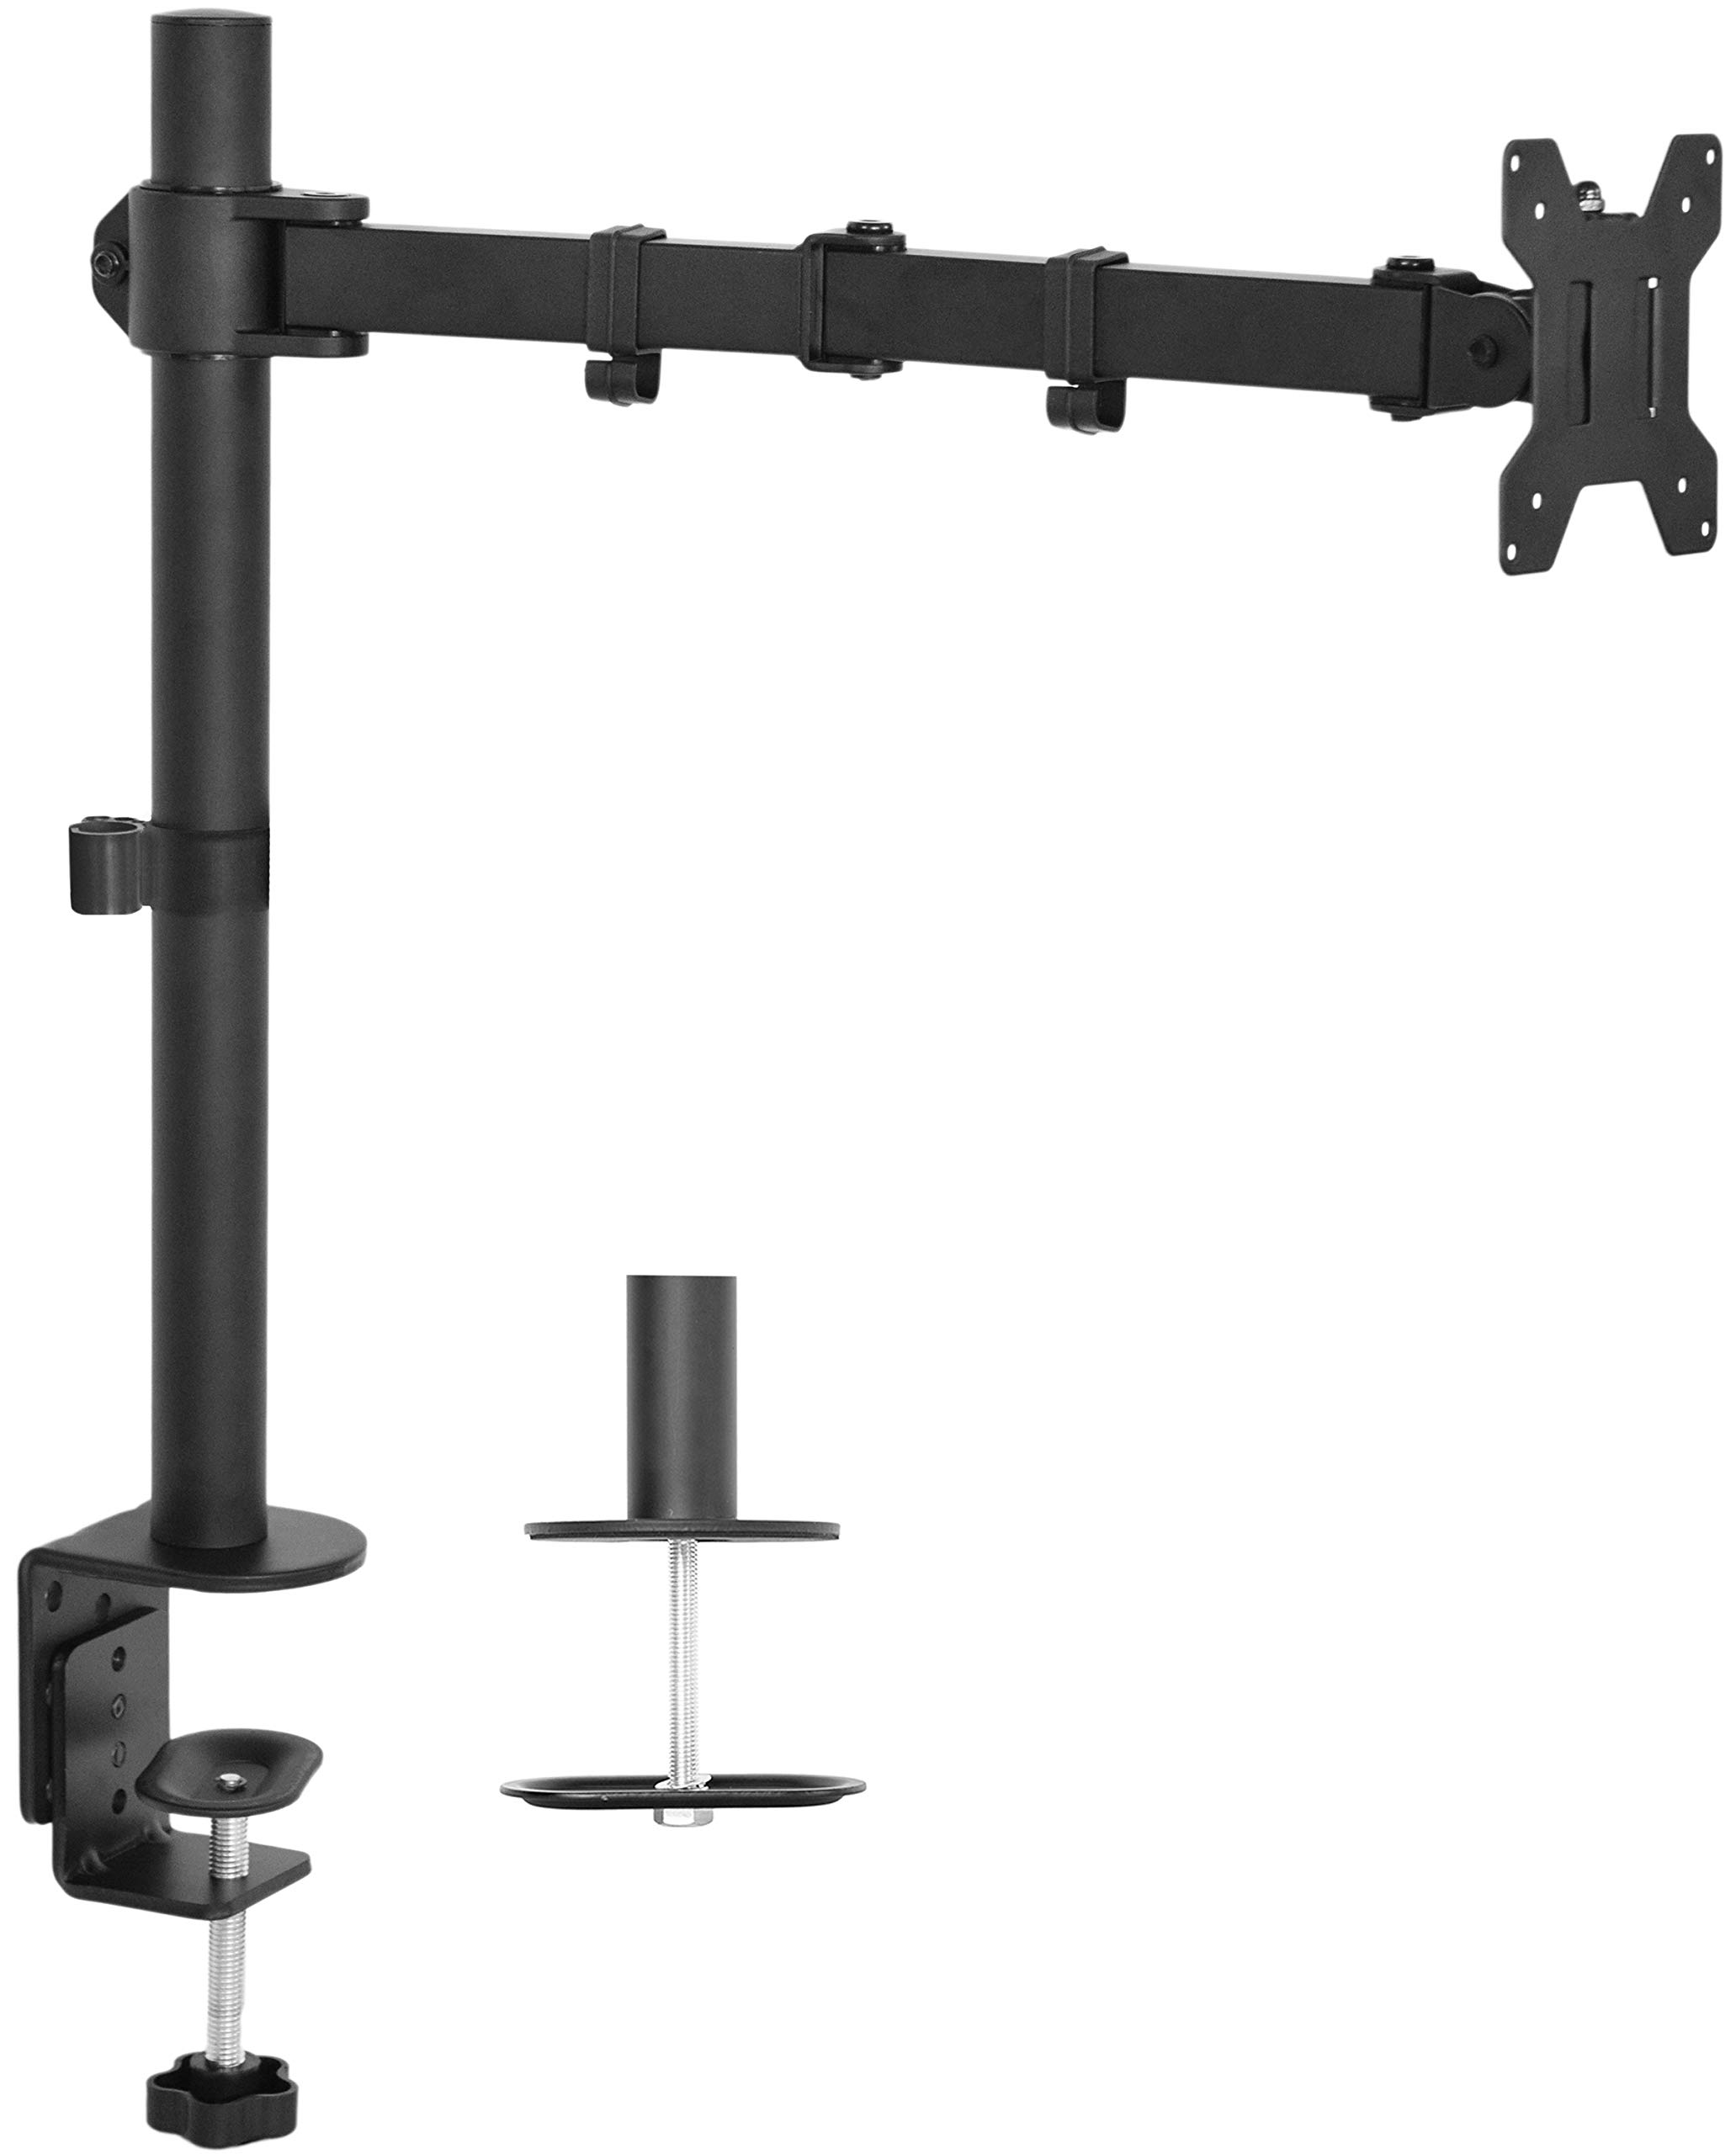 VIVO Single LCD Monitor Desk Mount Stand Fully Adjustable/Tilt/Articulating for 1 Screen 13'' to 27'' (STAND-V001) by VIVO